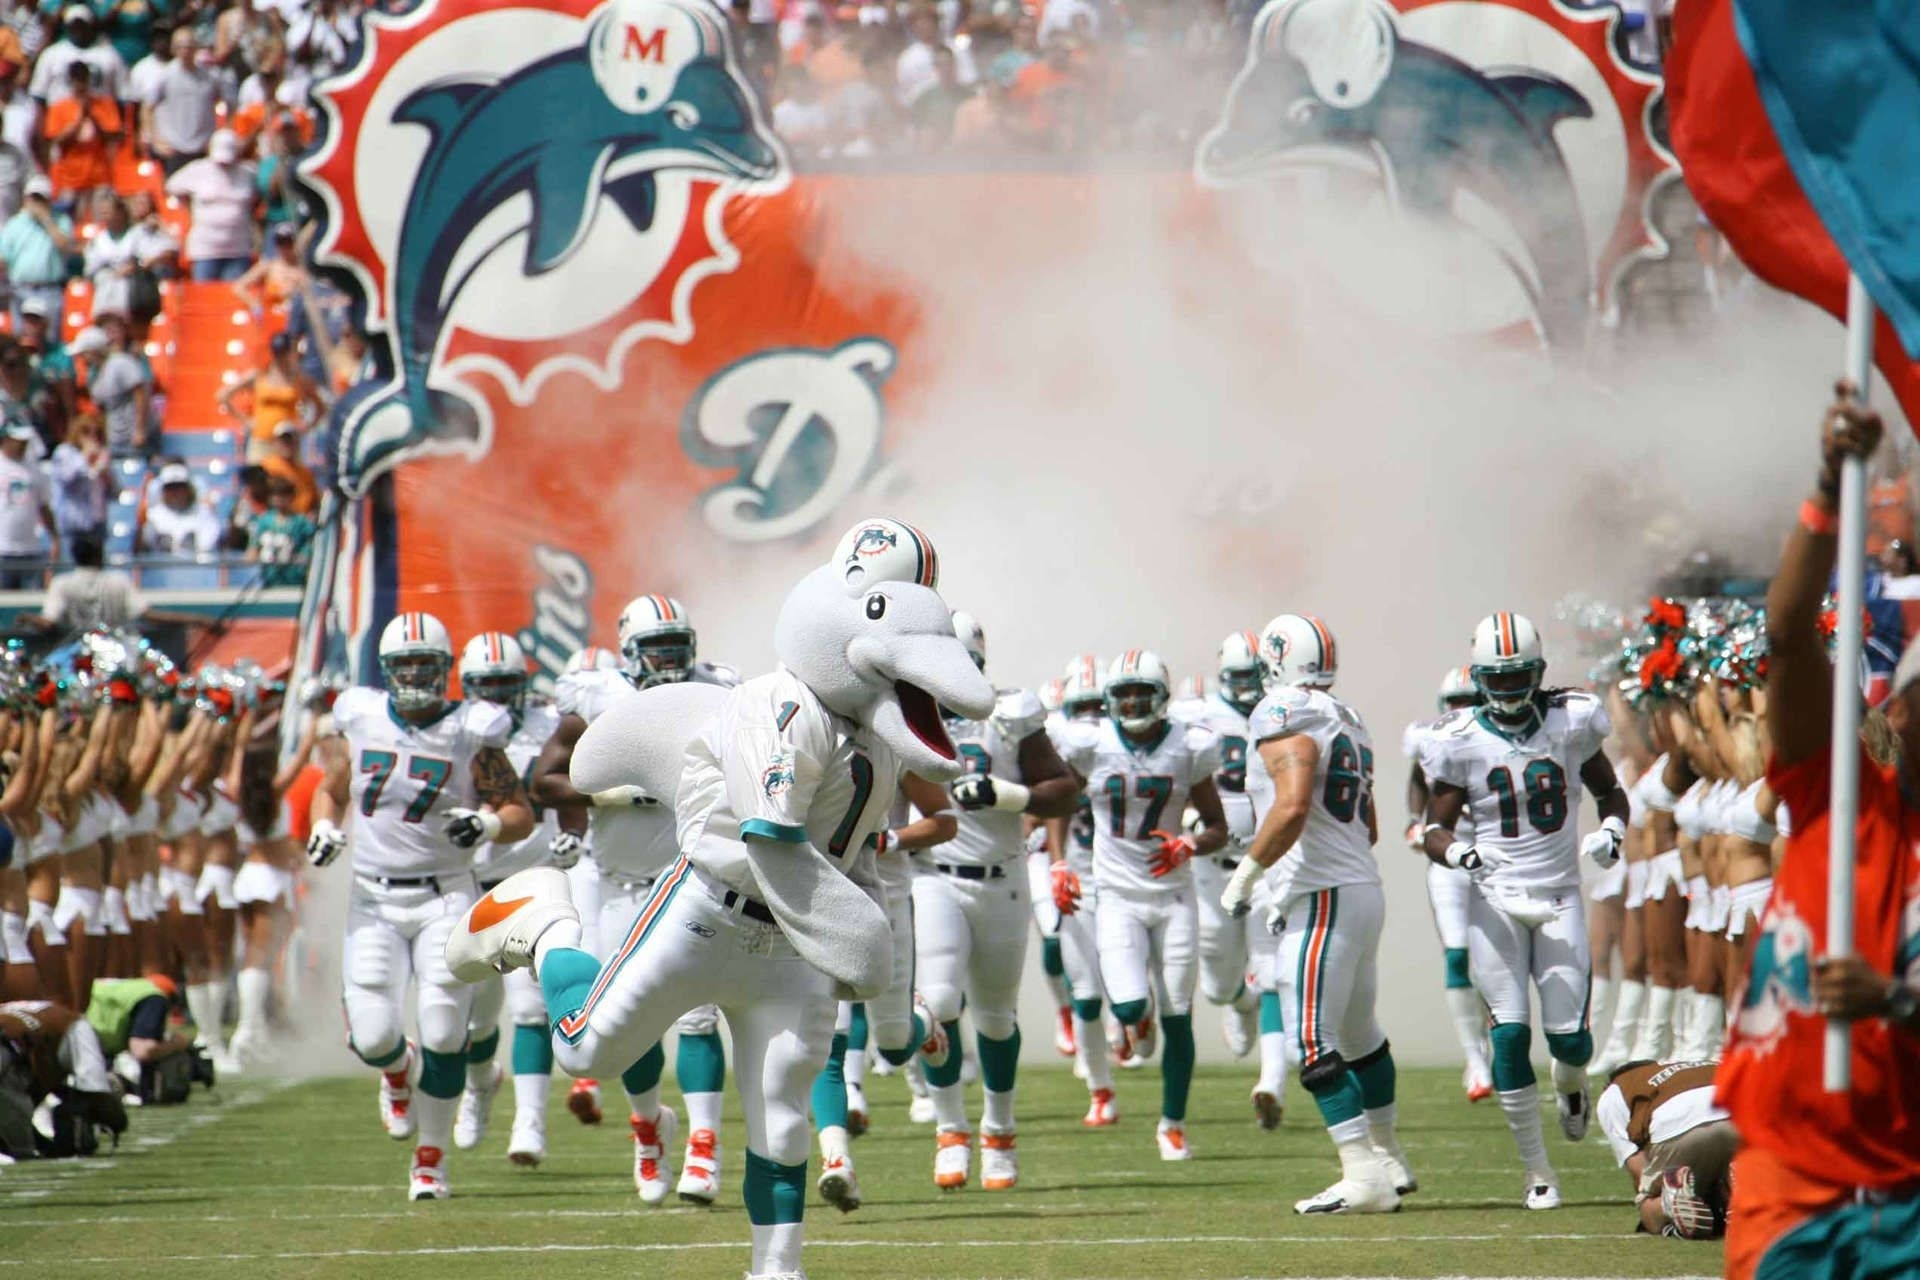 Miami Dophins Games Nfl Wallpaper Hd | Miami Dolphins in How Many Super Bowls Do Miami Dolphins Have